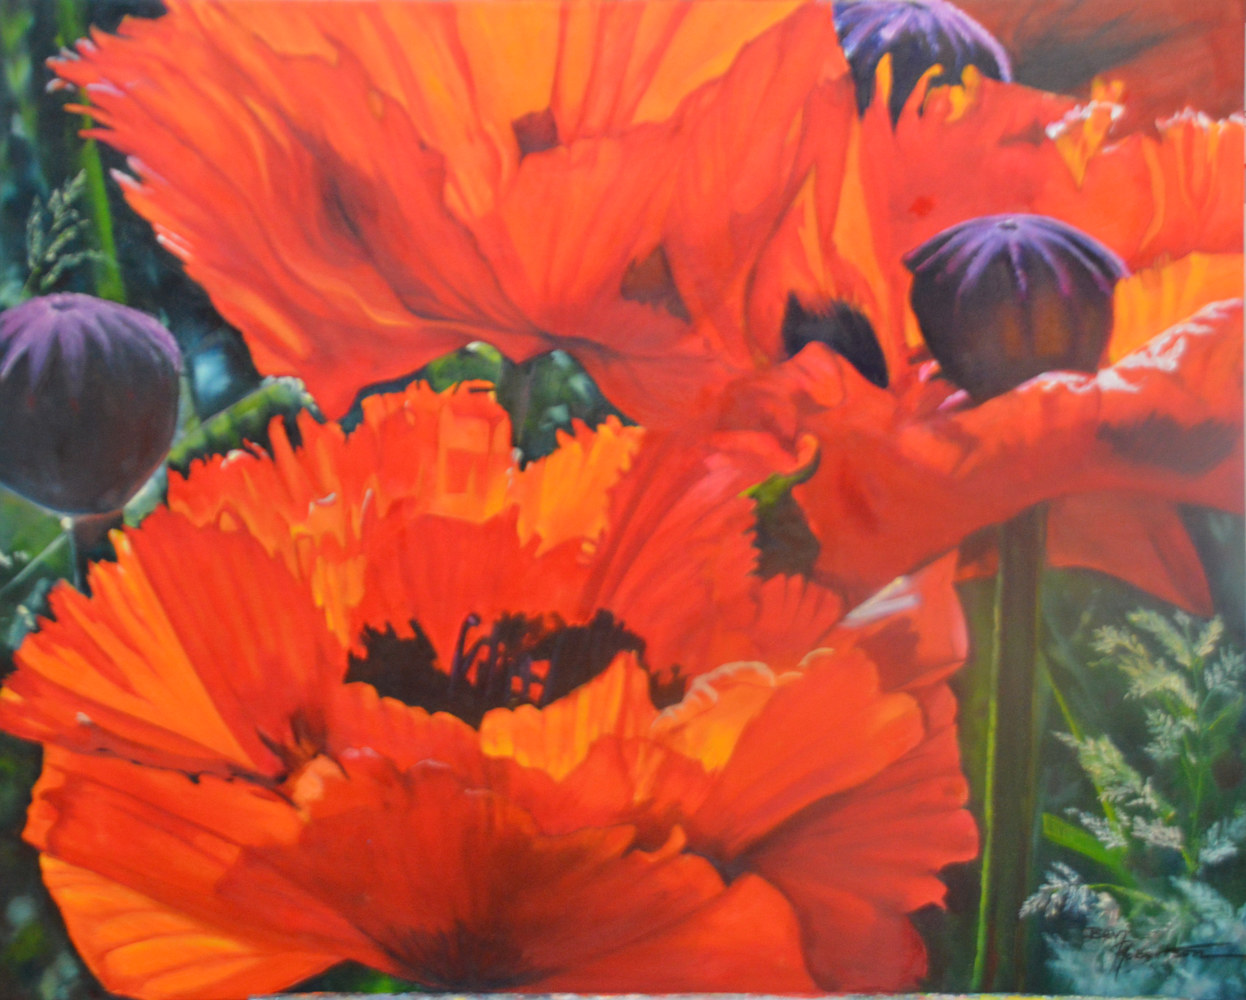 Oil painting Poppies in the Grass by Bev Robertson